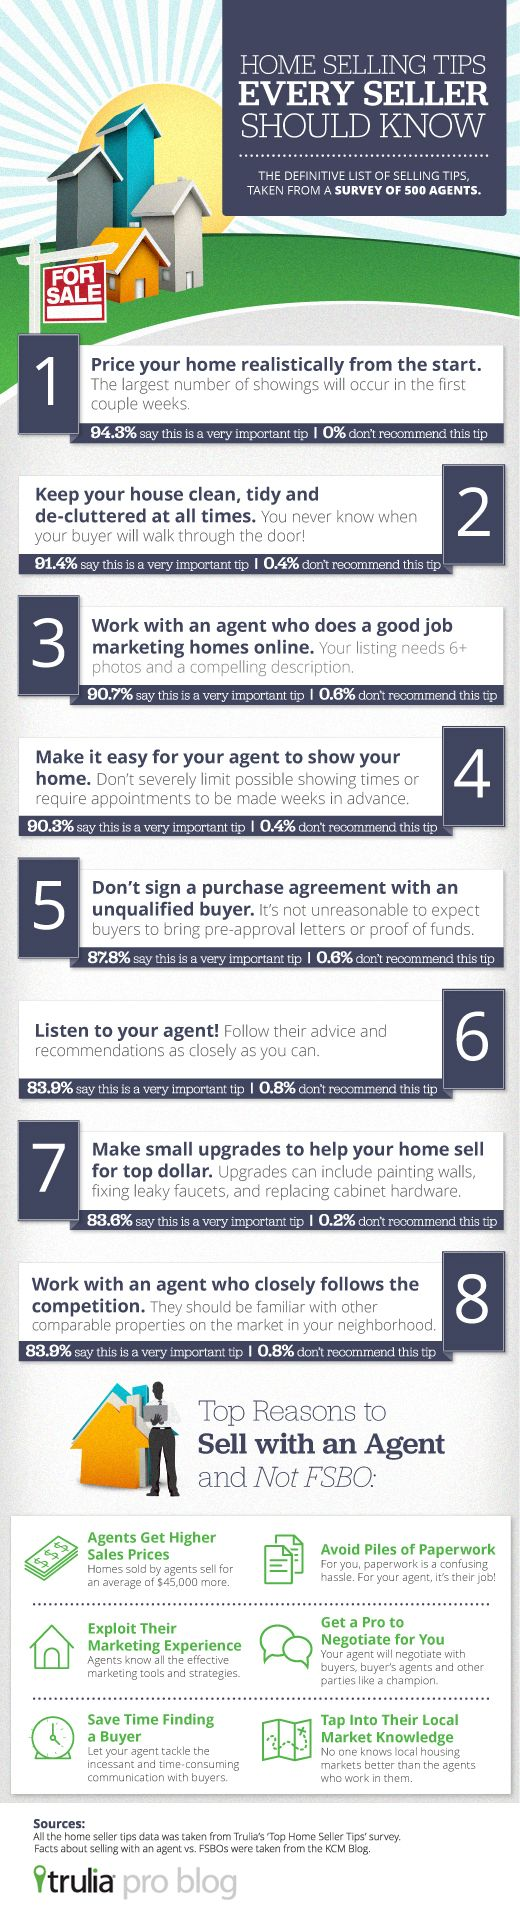 What home selling tips are the most important for sellers to know? We sought to answer this question when we surveyed 500 real estate agents about the import...